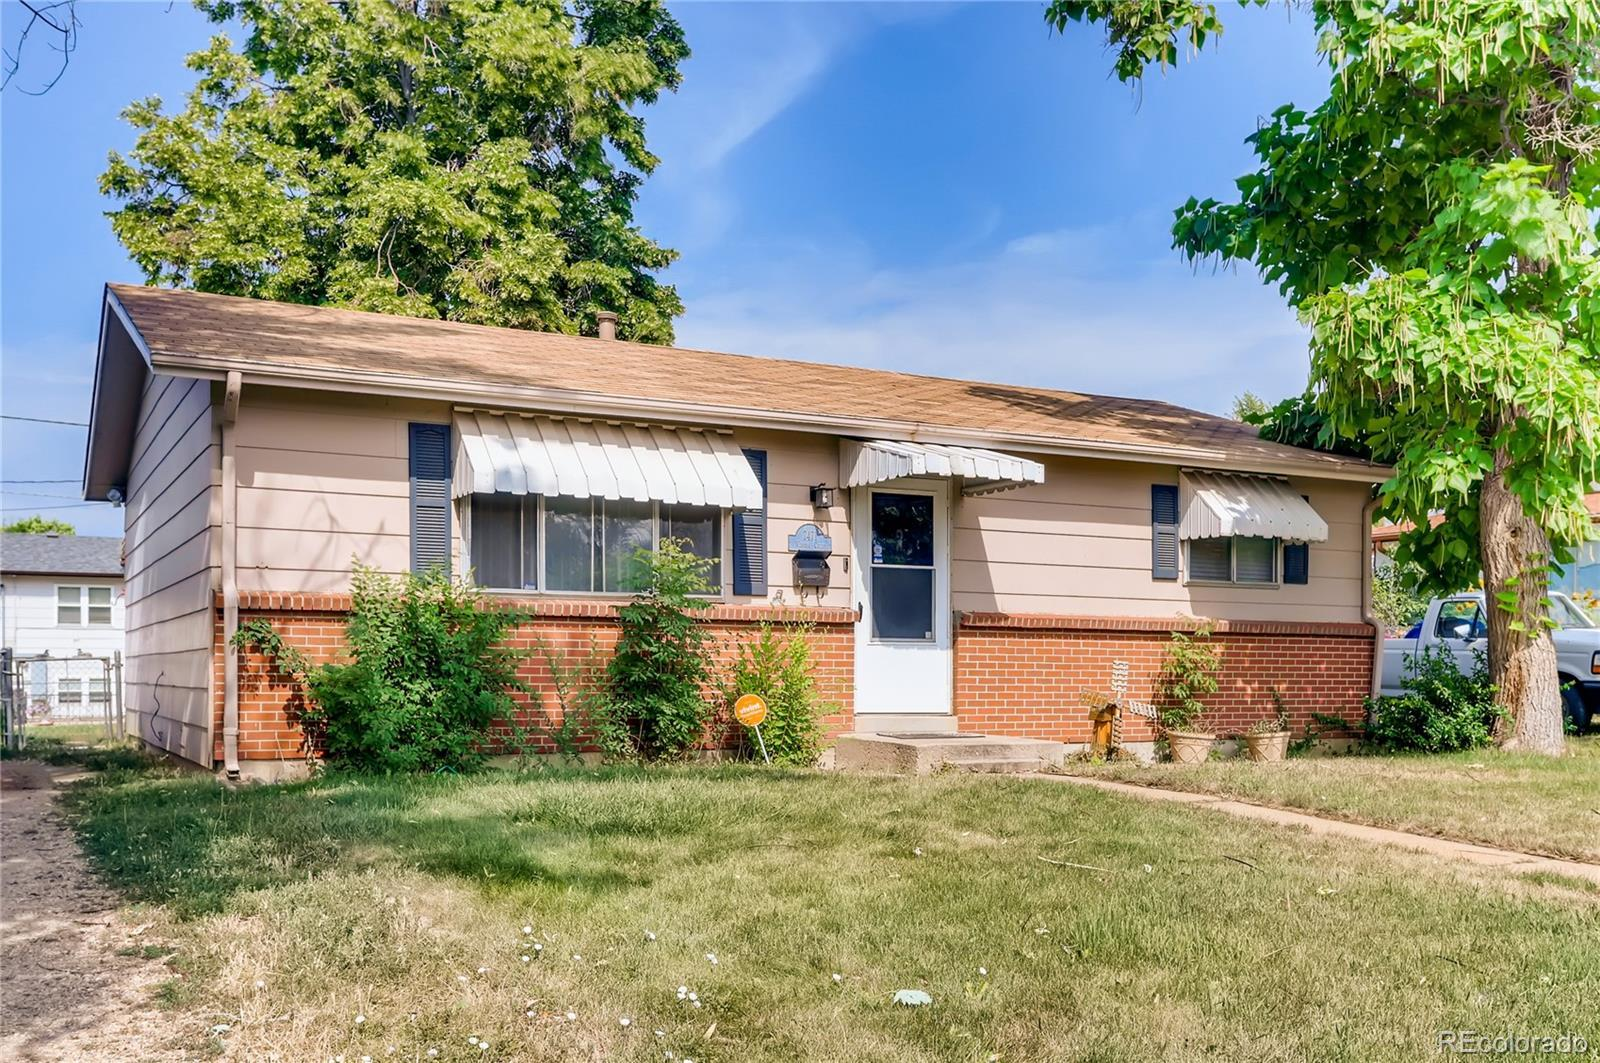 7471 Winona Court, Westminster, CO 80030 - #: 5144059